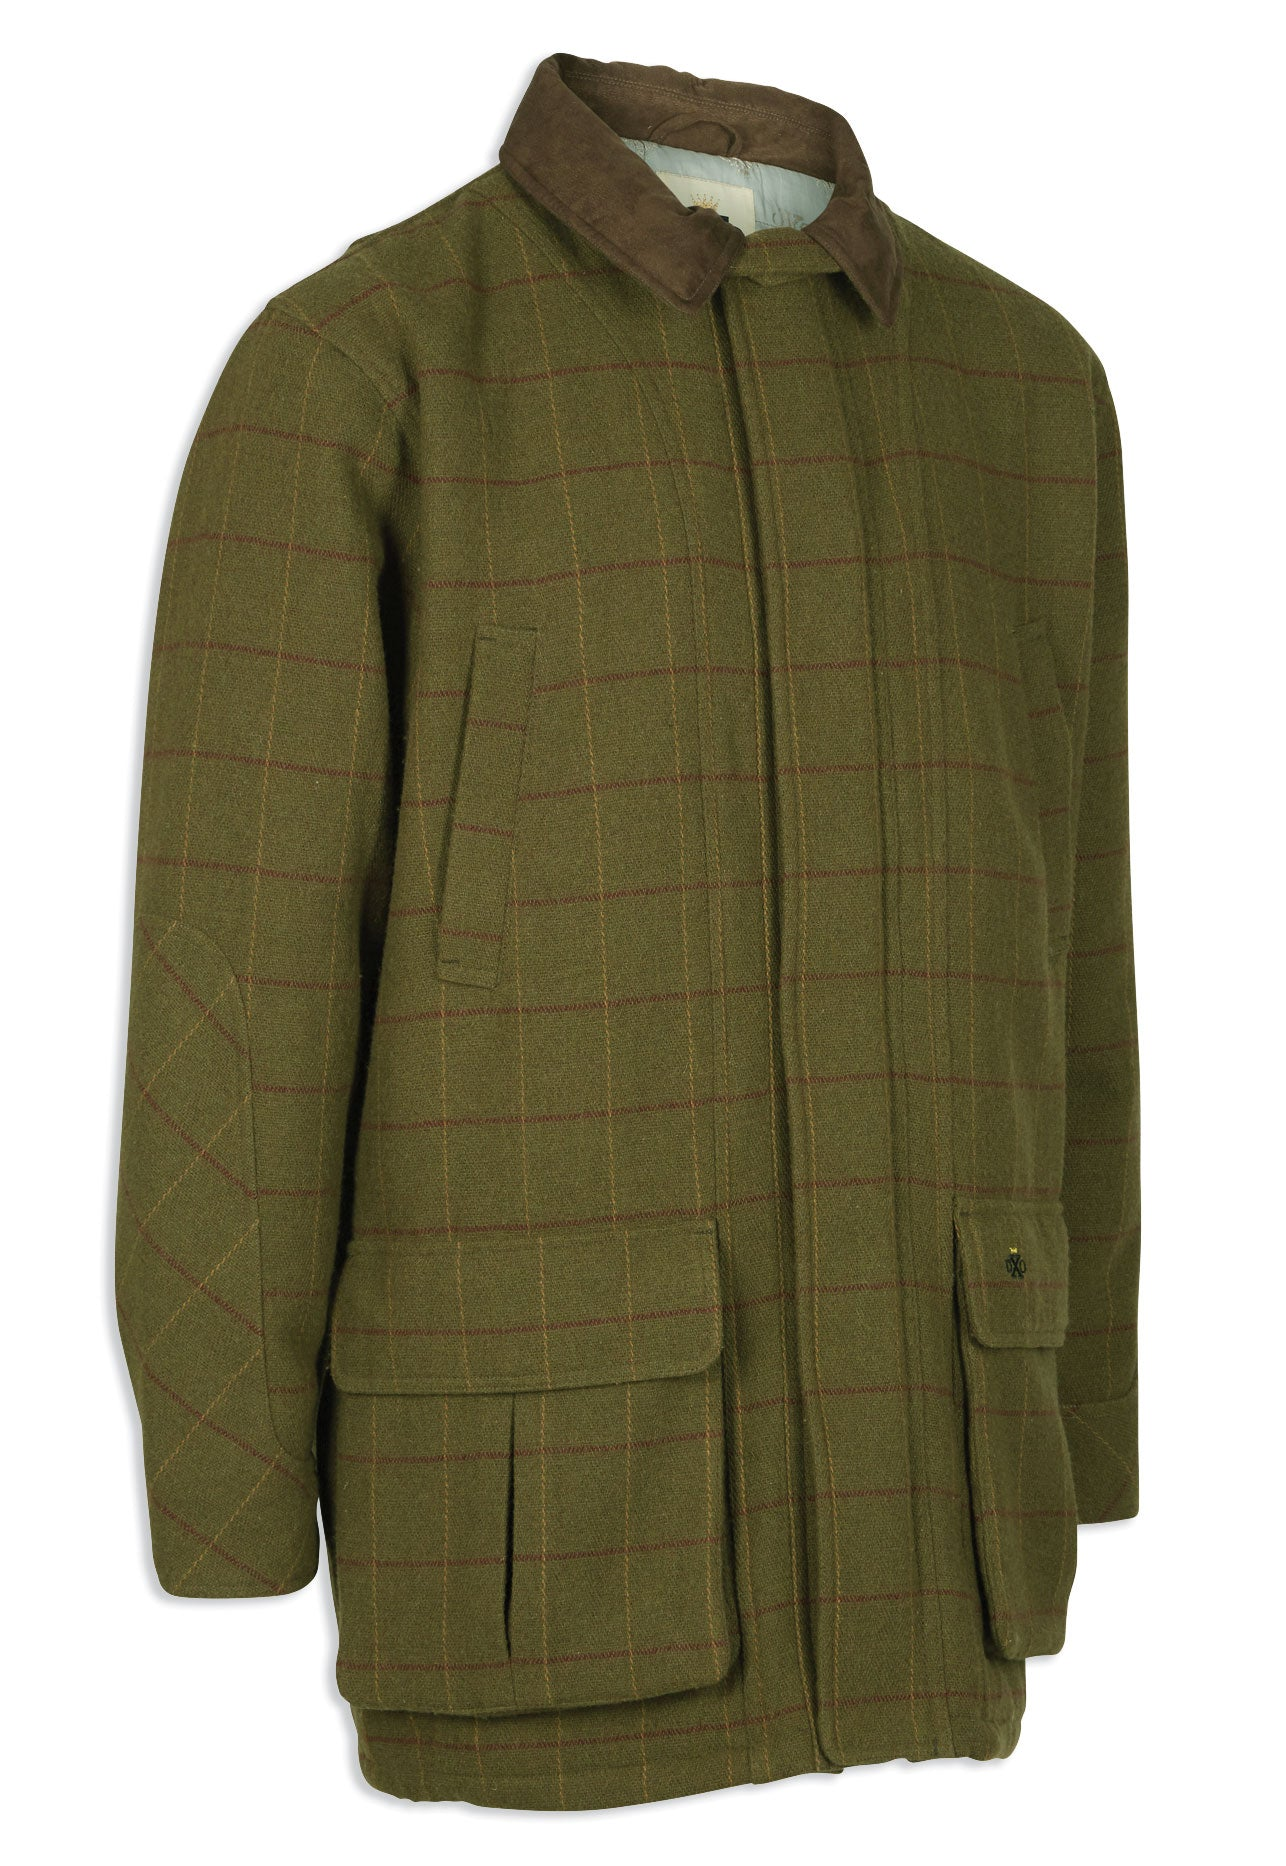 Mosstone Deerhunter Woodland Waterproof Tweed Shooting Jacket